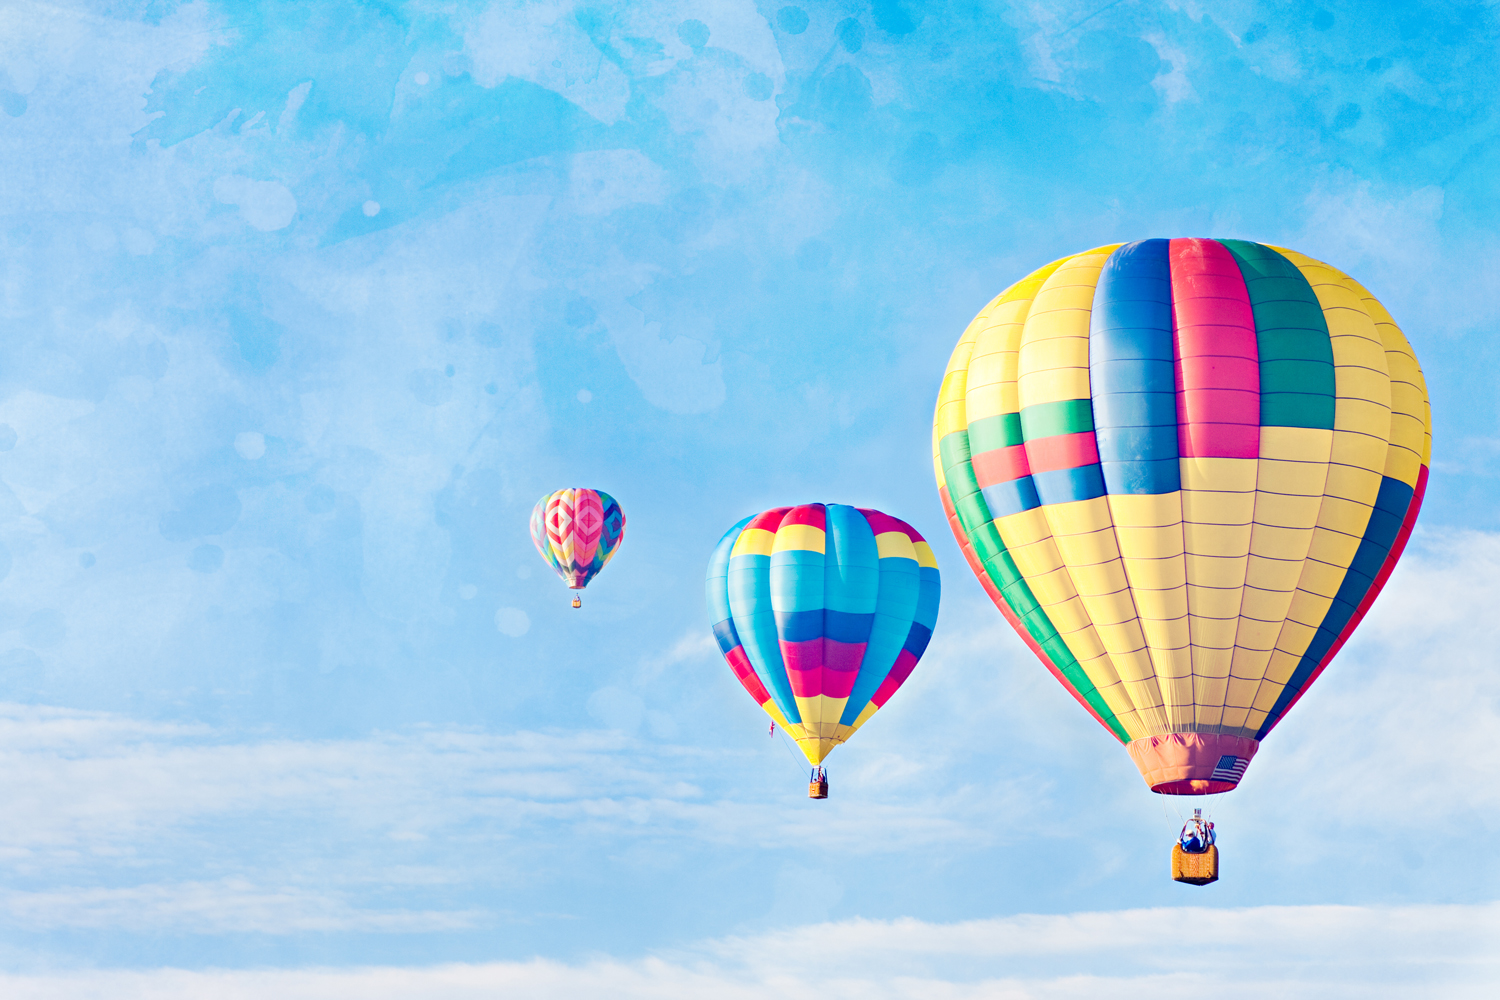 Whimsical Hot Air Balloons